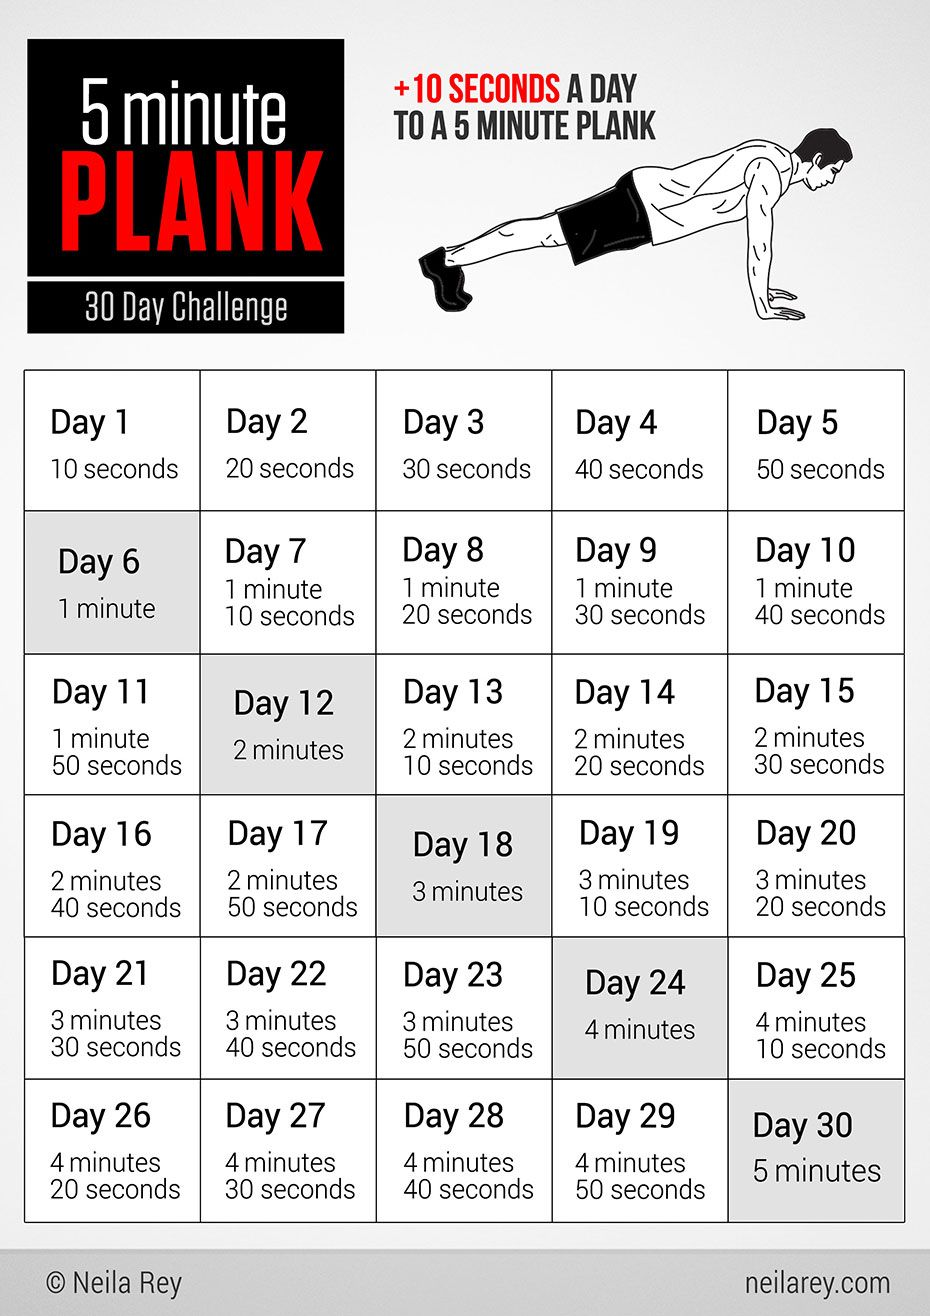 5-minute Plank 30 Day Challenge... This has to be under ...